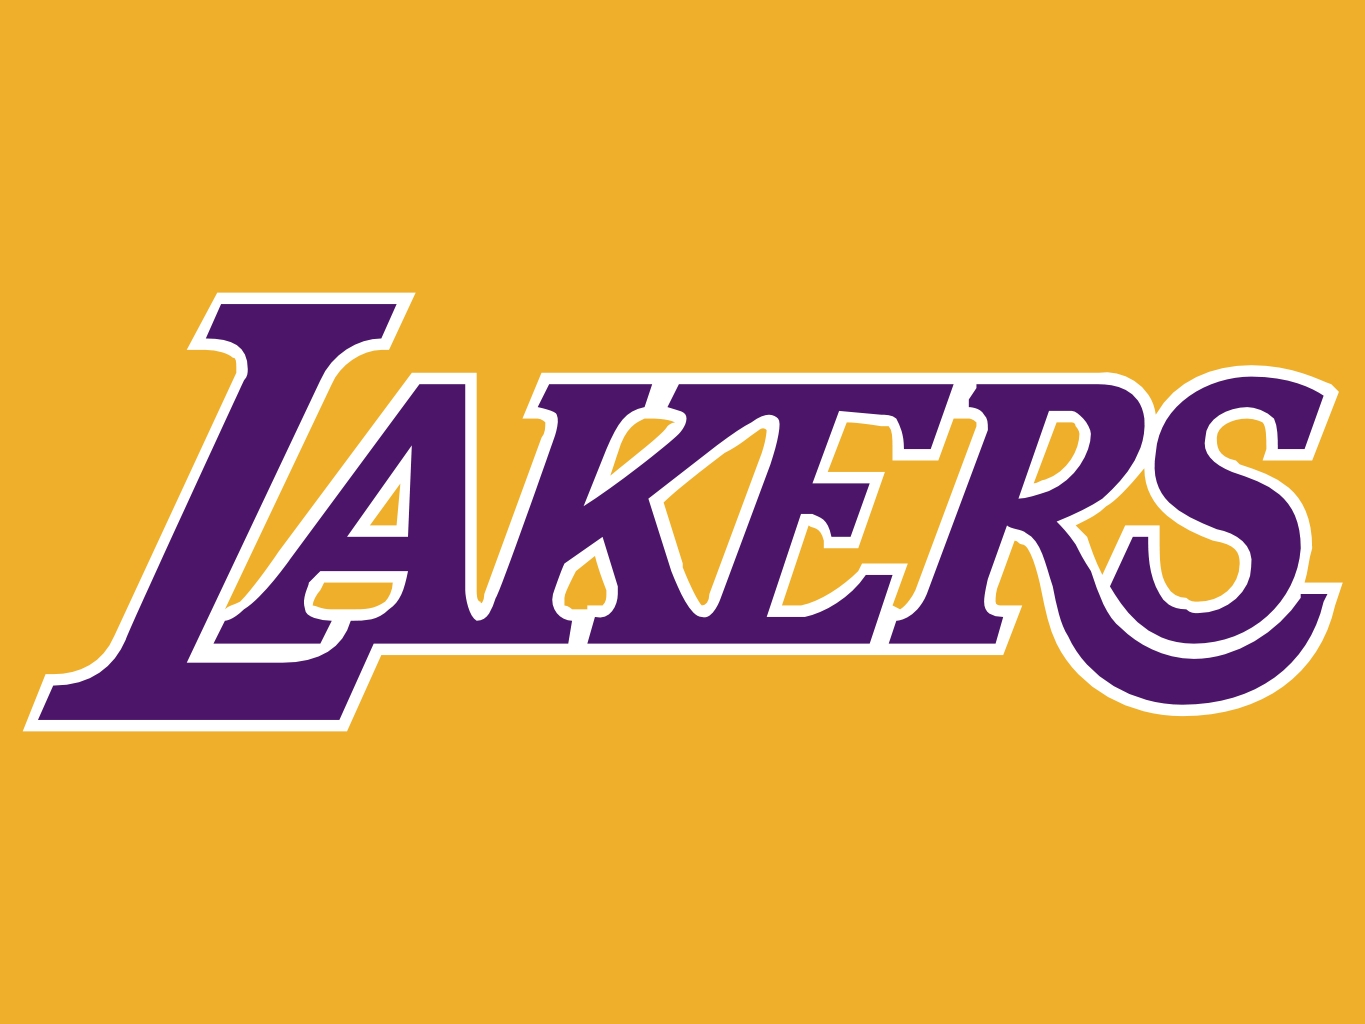 Lakers - world of desire